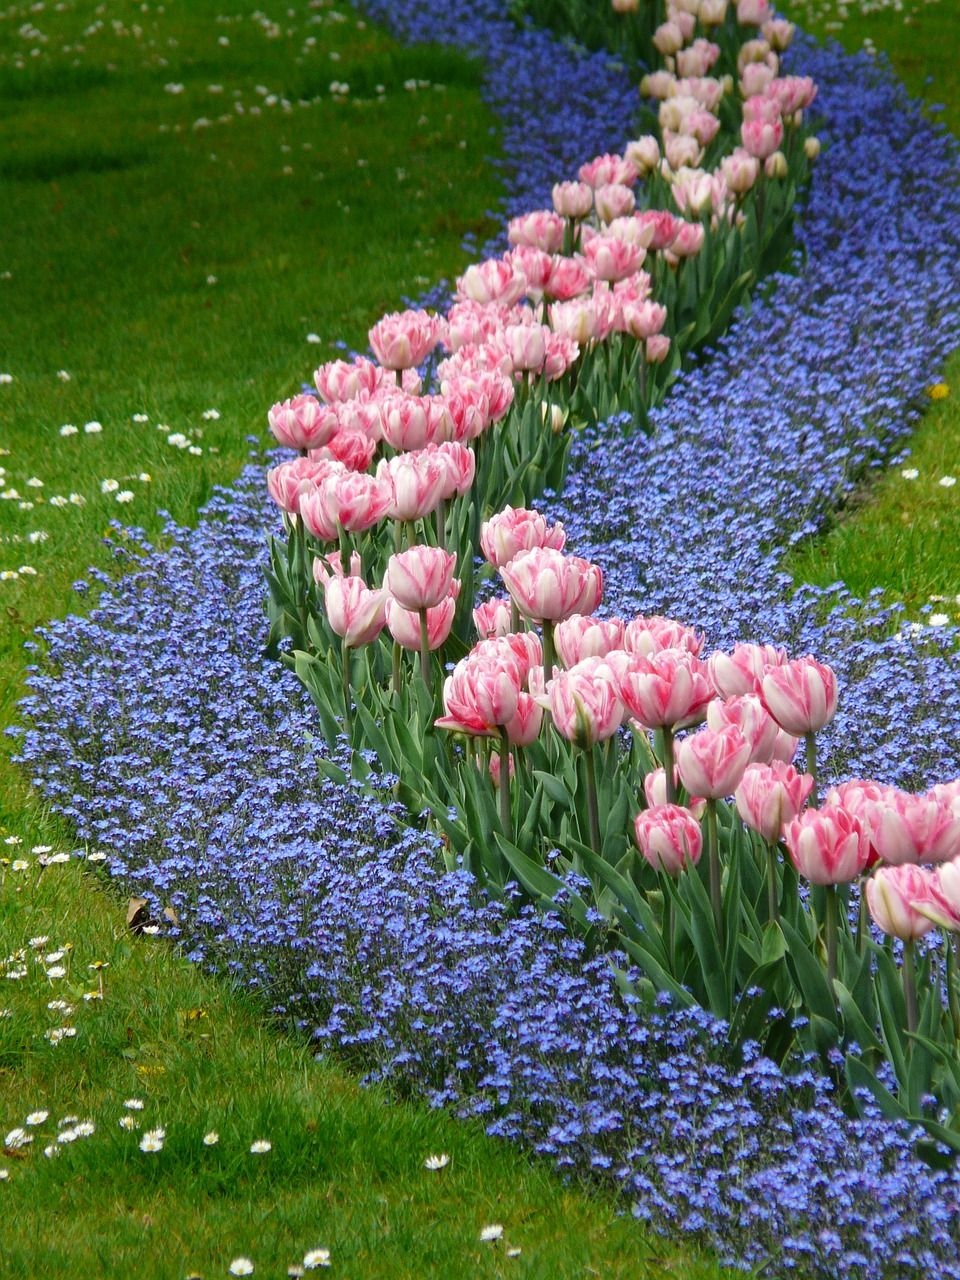 Free Image On Pixabay Tulips Bed Pink Forget Me Not Tulips Garden Beautiful Gardens Tulips